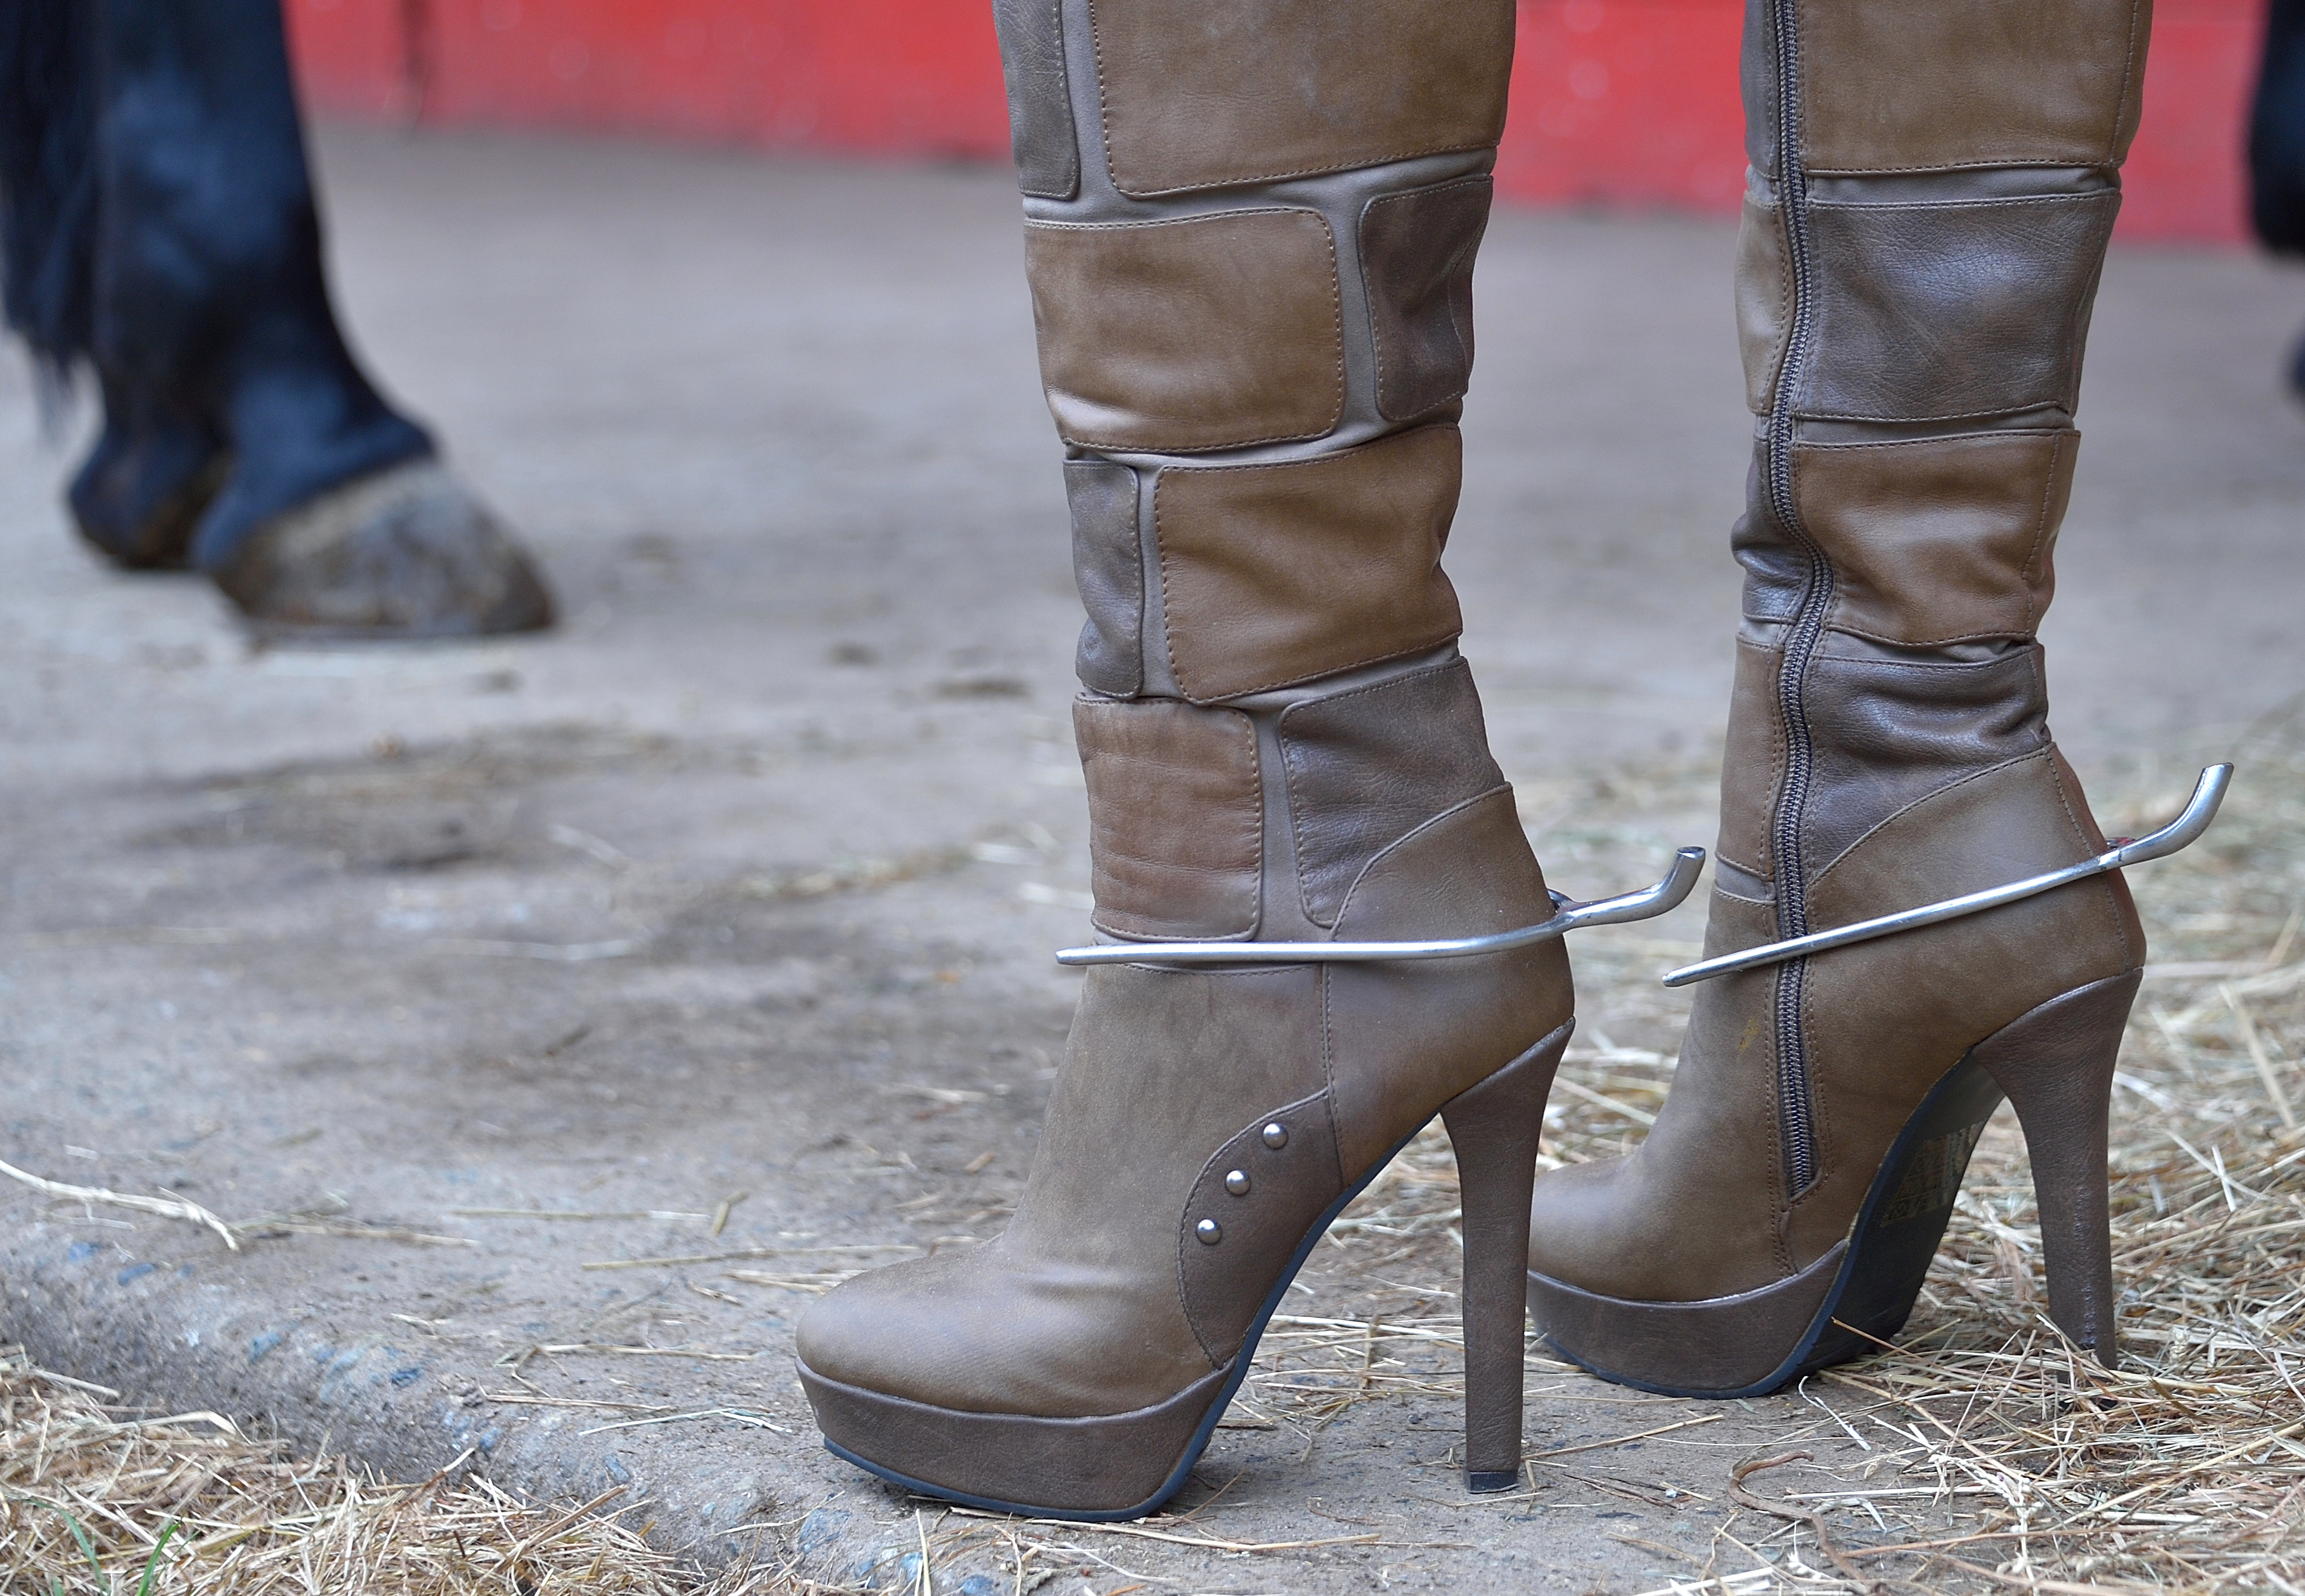 Vicky Vicks Pedal Vamp Pedal Pumping Clips | Fashion boots